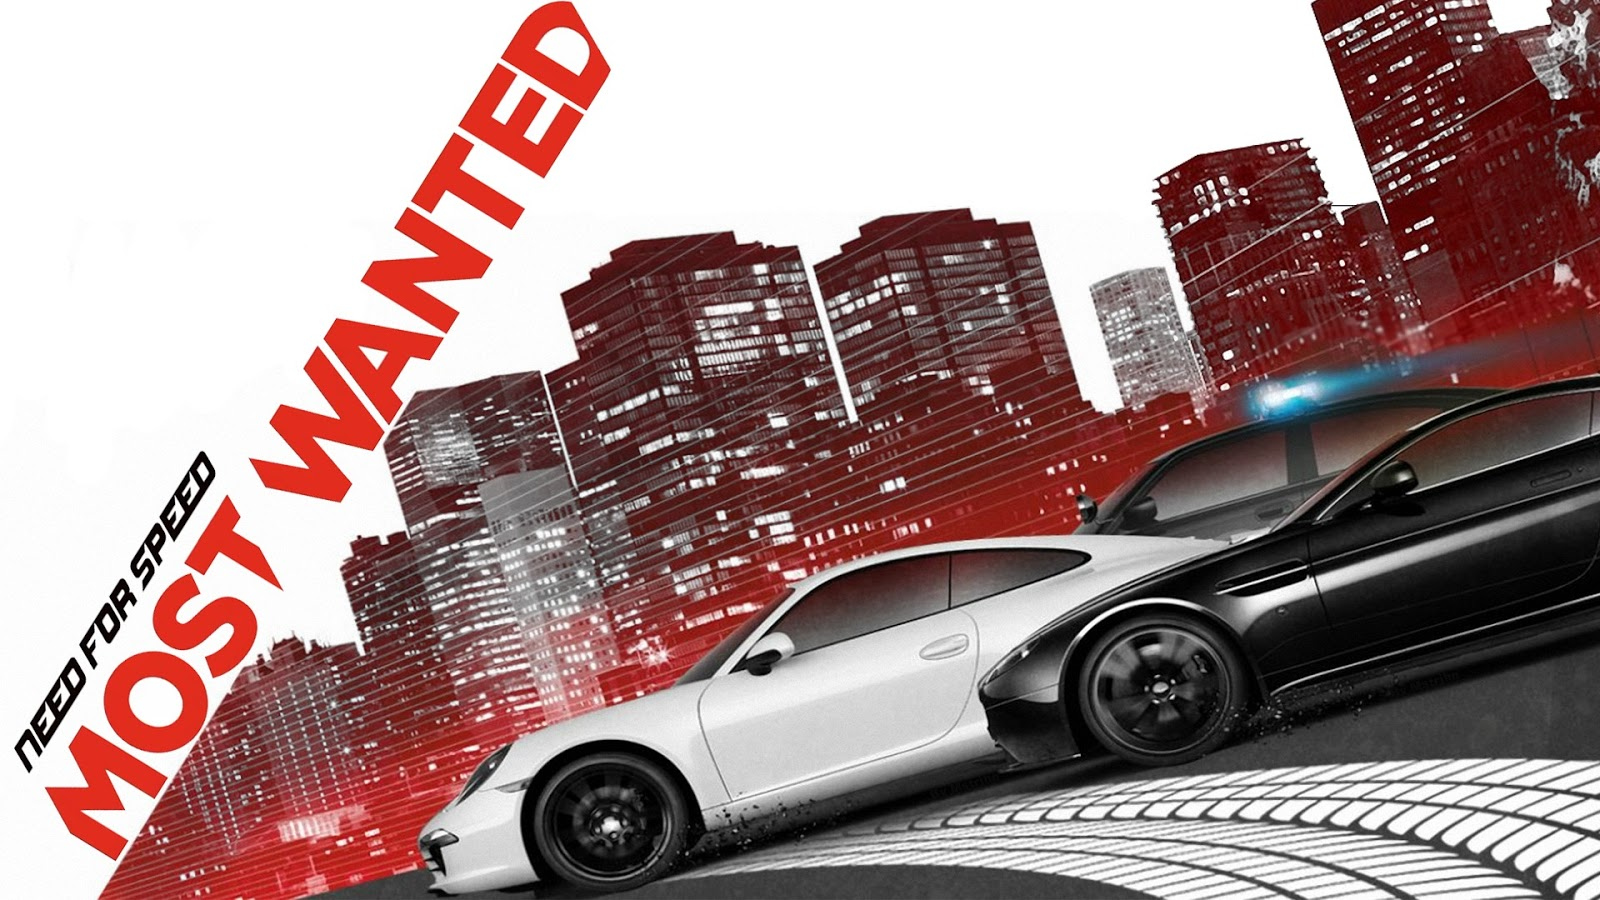 nfs most wanted mod apk download free